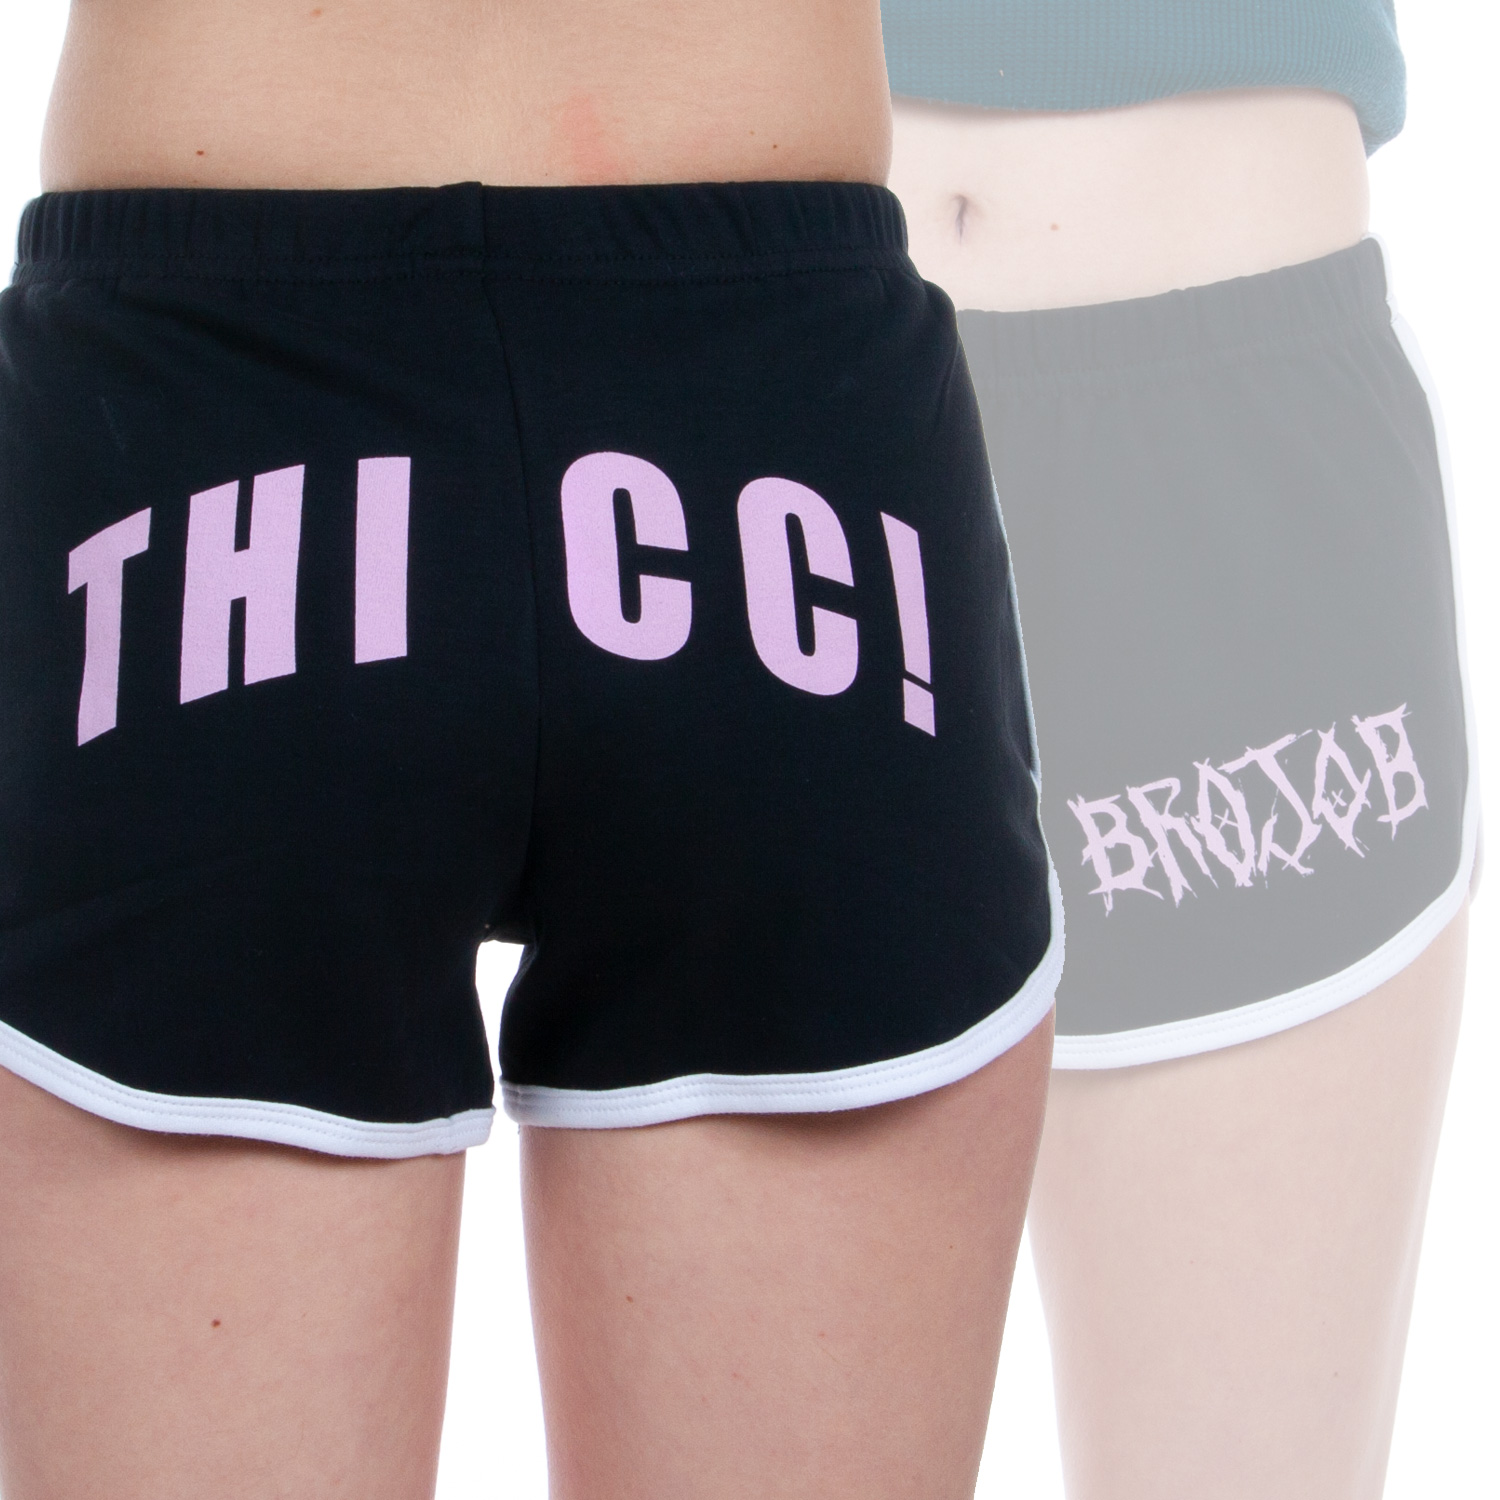 Thicc Track Shorts